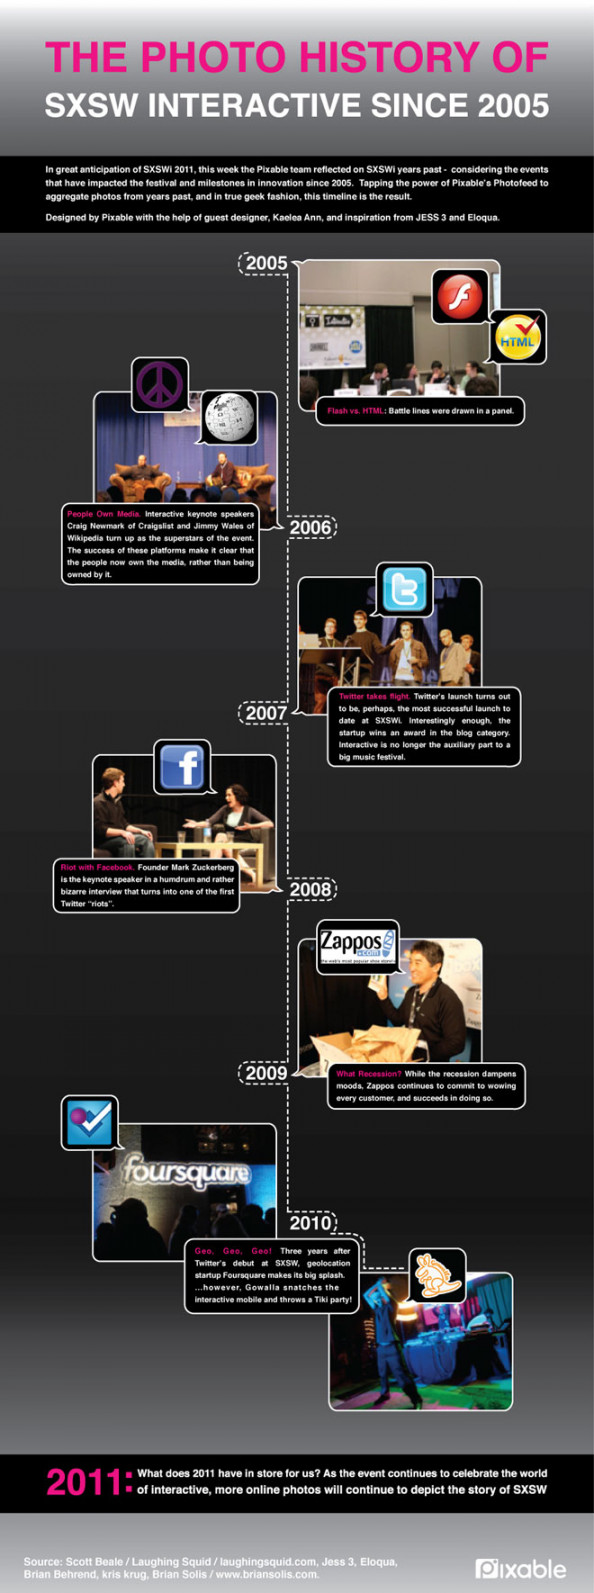 Photo History of SXSW Since 2005 Infographic